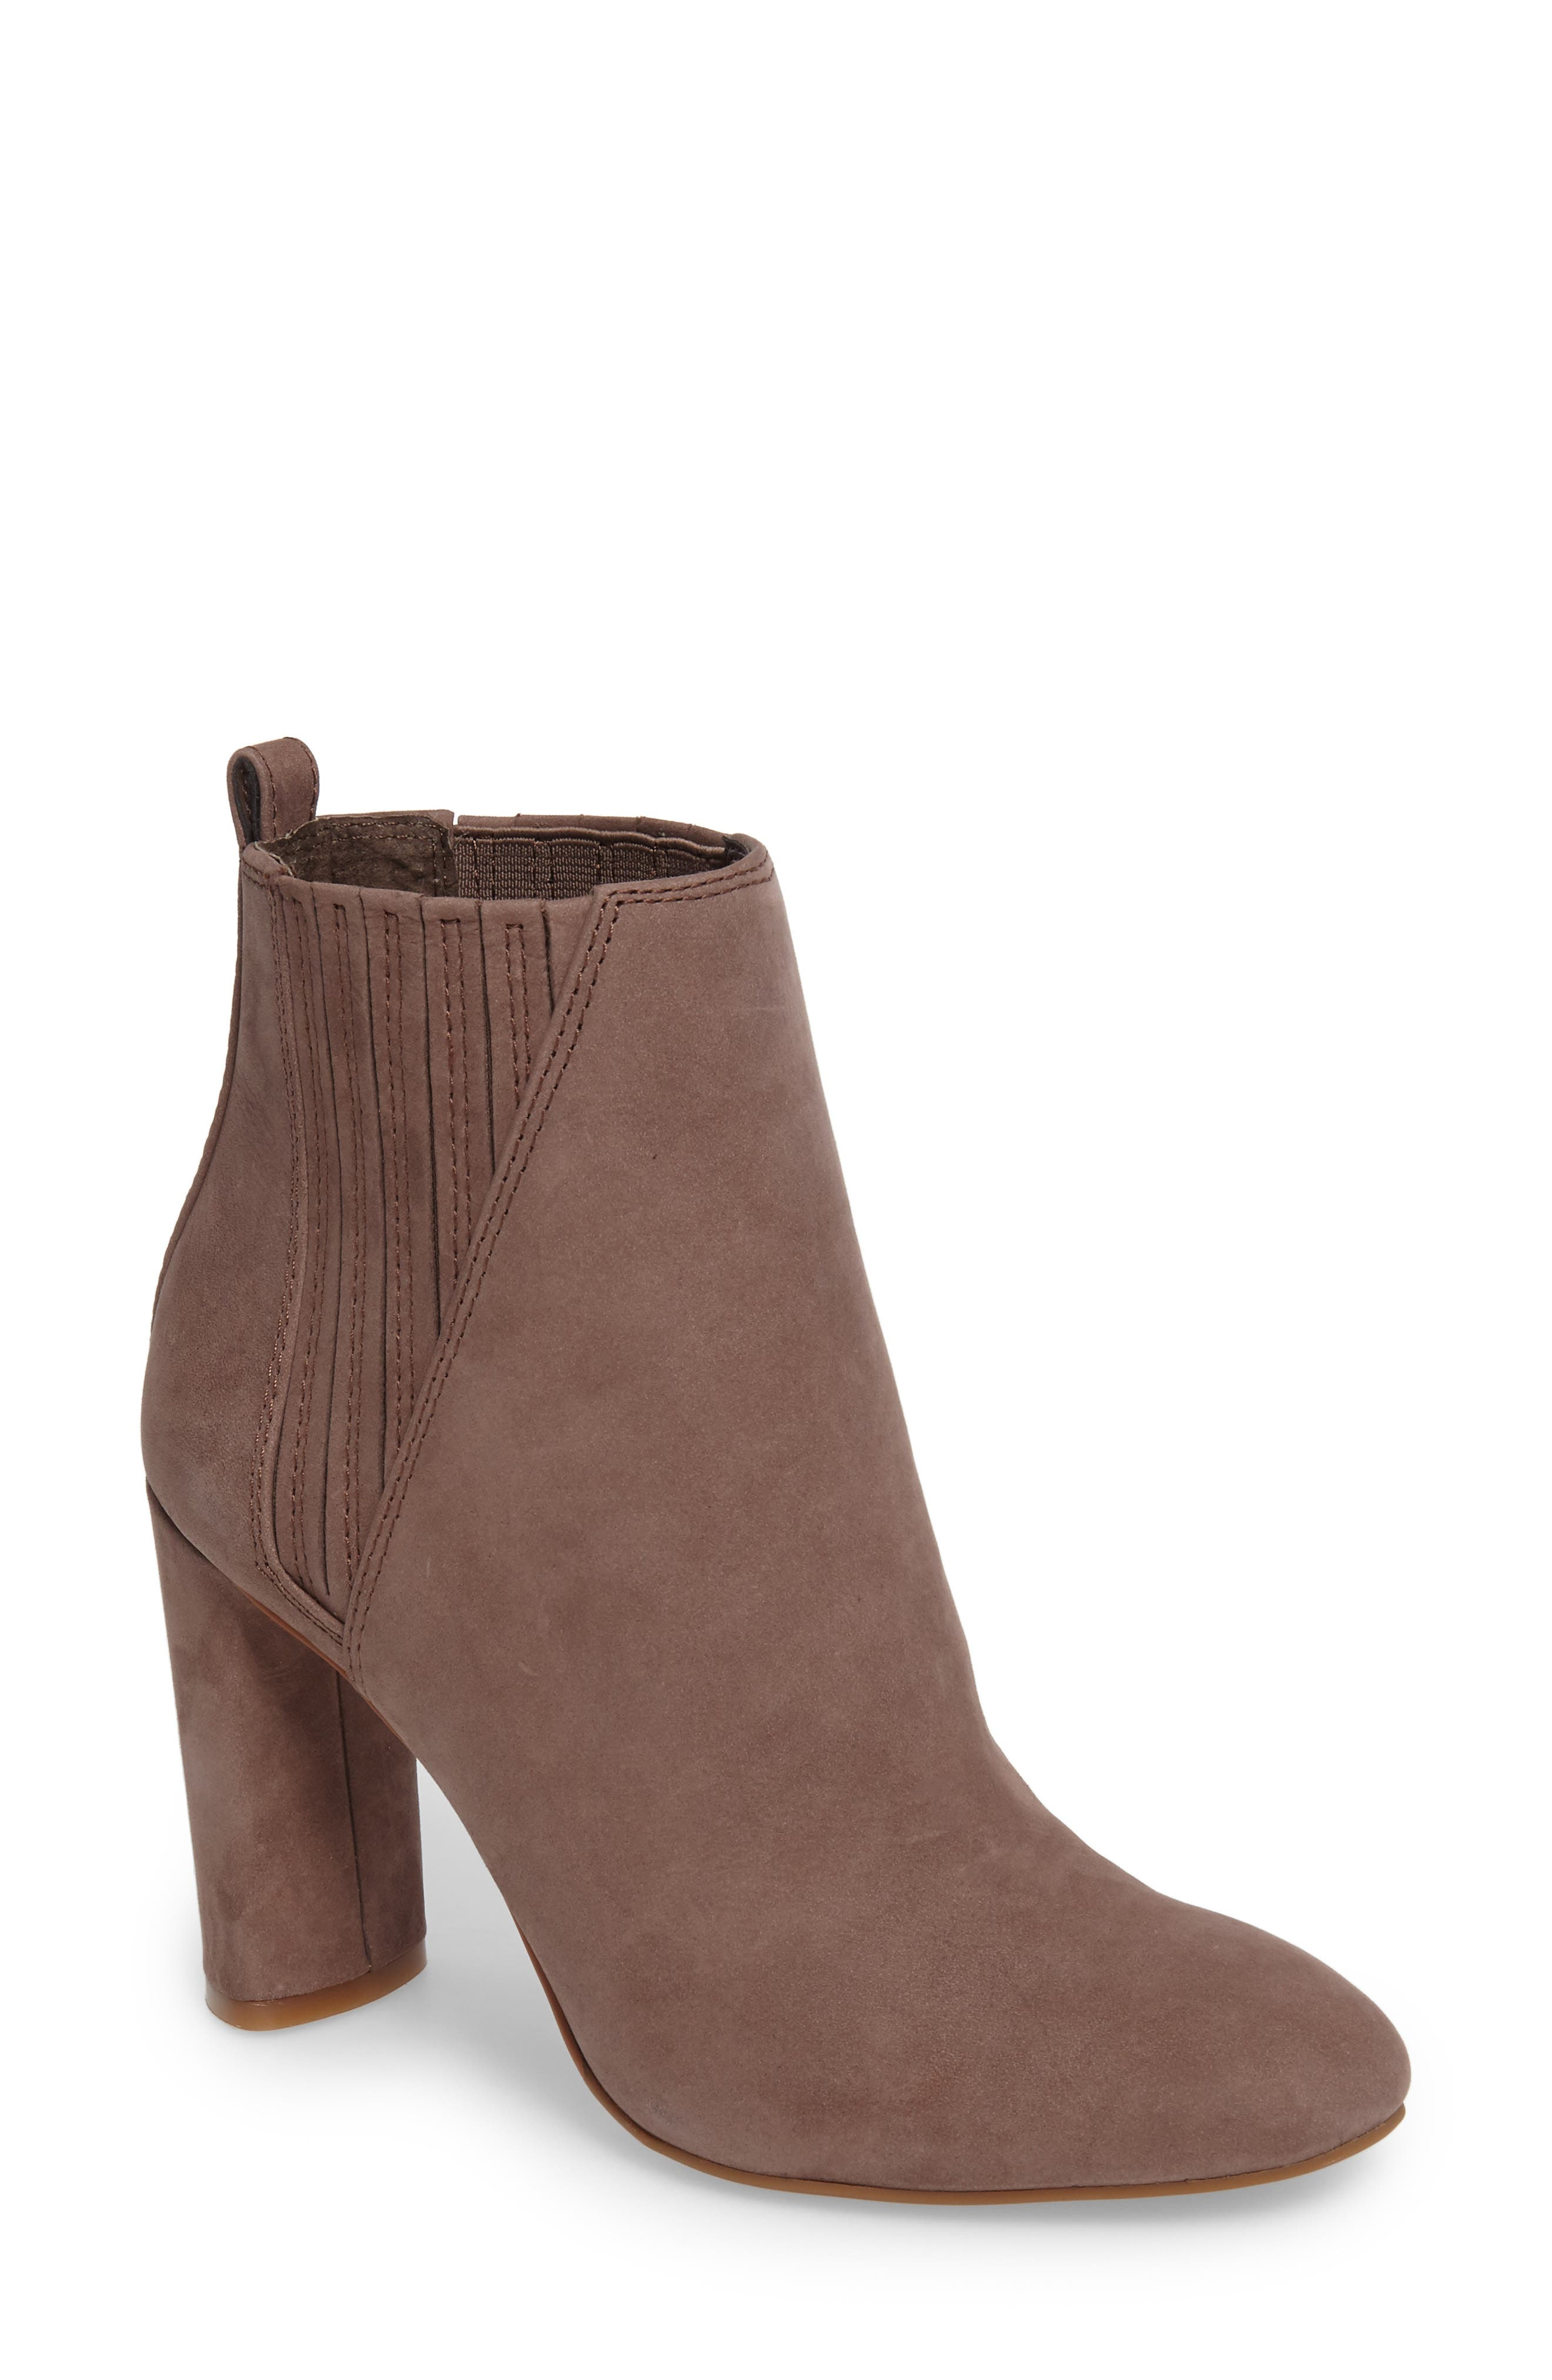 Main Image - Vince Camuto Fateen Bootie (Women)